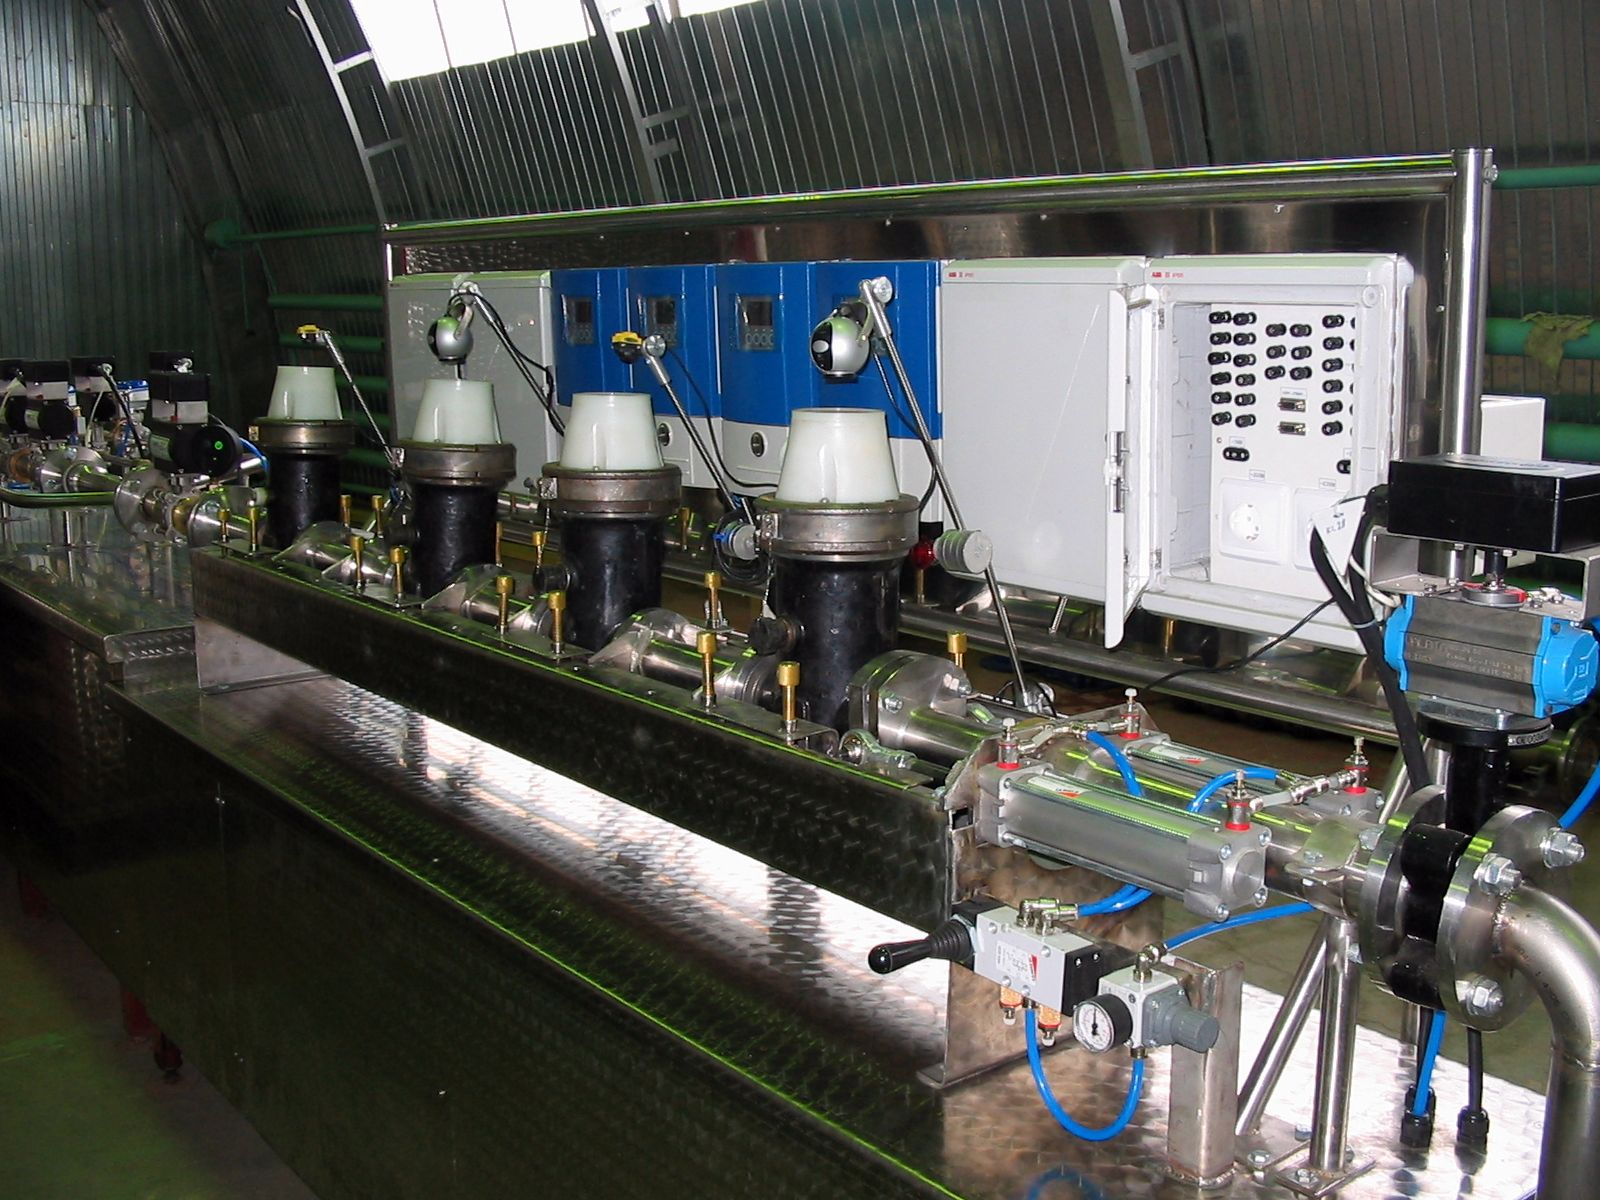 Water and Oil Flow Meters Calibration Test Bench Systems in accordance with IS0 4185, OIML R105, OIML R49,flow metering,calibration test stand,volumetric flowmeter,mass flowmeter,ISO 4185,OIML R 105,OIML R 49,Promass X,Micro Motion CMFHC,Trio-Mass,Optimass 2000,Rotamass, reference meter, thermal mass,multiphase,coriolis,mass electromagnetic variable area ultrasonic vortex flowmeter,verification calibration test testing flowmeter,flowmeter calibration standards,weighing method,measurement liquid flow,liquid flow measurement,meter calibration,Komissarov Ltd,Metrology Systems EC,Endress+Hauser,Grundfos,Wilo,Siemens,流量測量,流量計校驗,校驗流量計,測試流量計,質量流量,體積流量,流量测量,流量计校验,校验流量计,测试流量计,流量测量,质量流量,体積流量, 流量計標定,  手段流量计的校准,  设备流量计标定, 流量計のキャリブレーション, 水油流量表检定试验台, 流量计标定试验台, 유량계 교정 테스트 벤치, Medidores de flujo banco de pruebas de calibración, Medidores de Vazão banco de ensaio de calibração